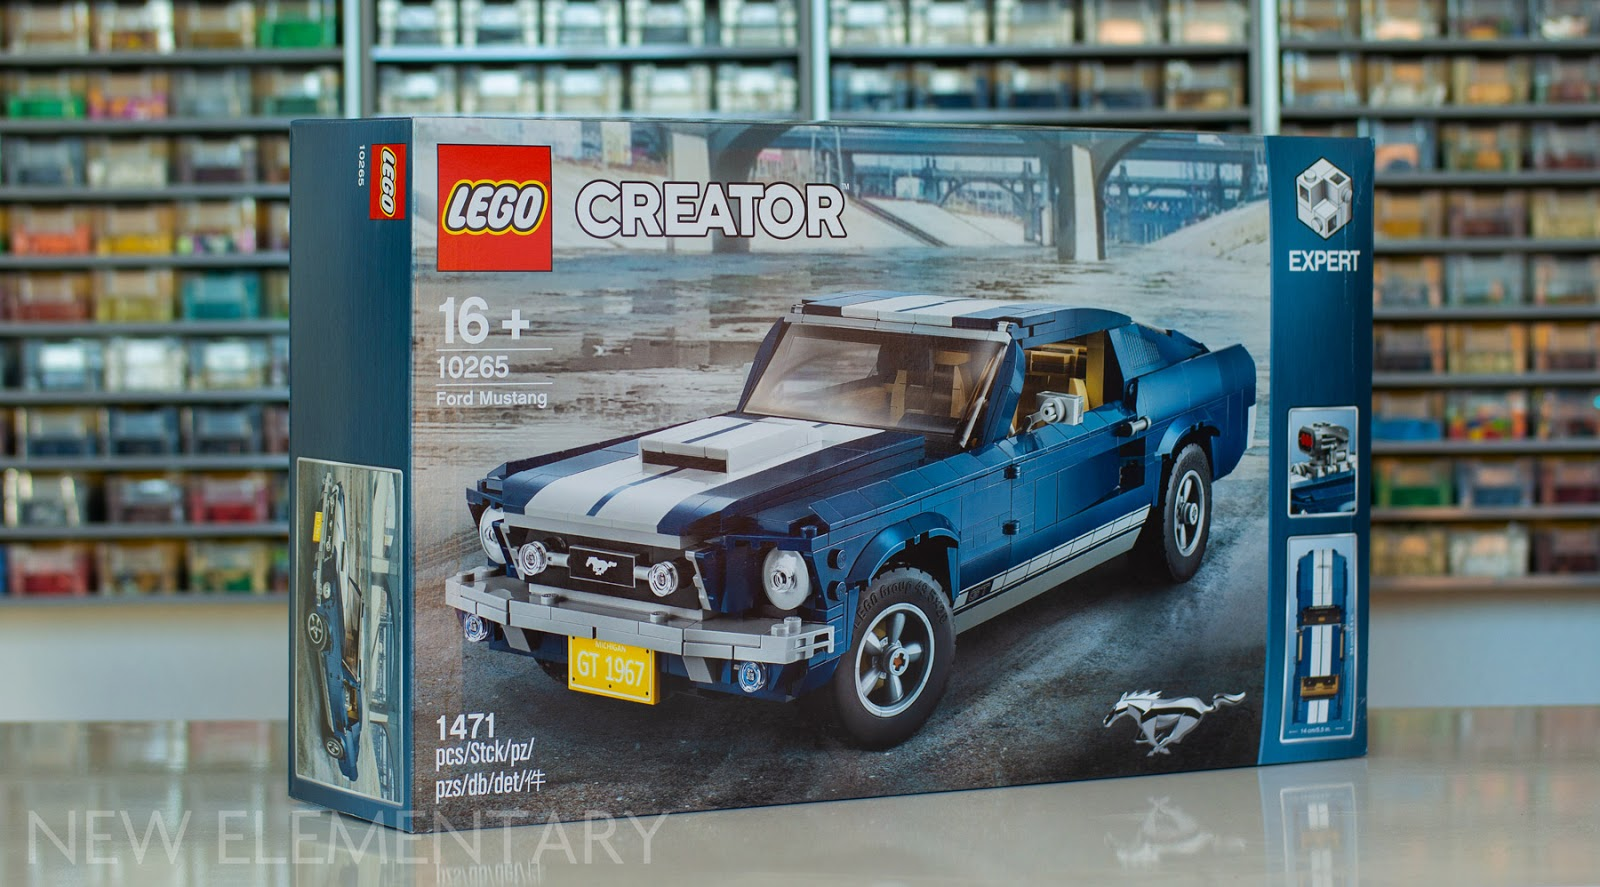 LEGO® Creator review: 10265 Ford Mustang | New Elementary, a